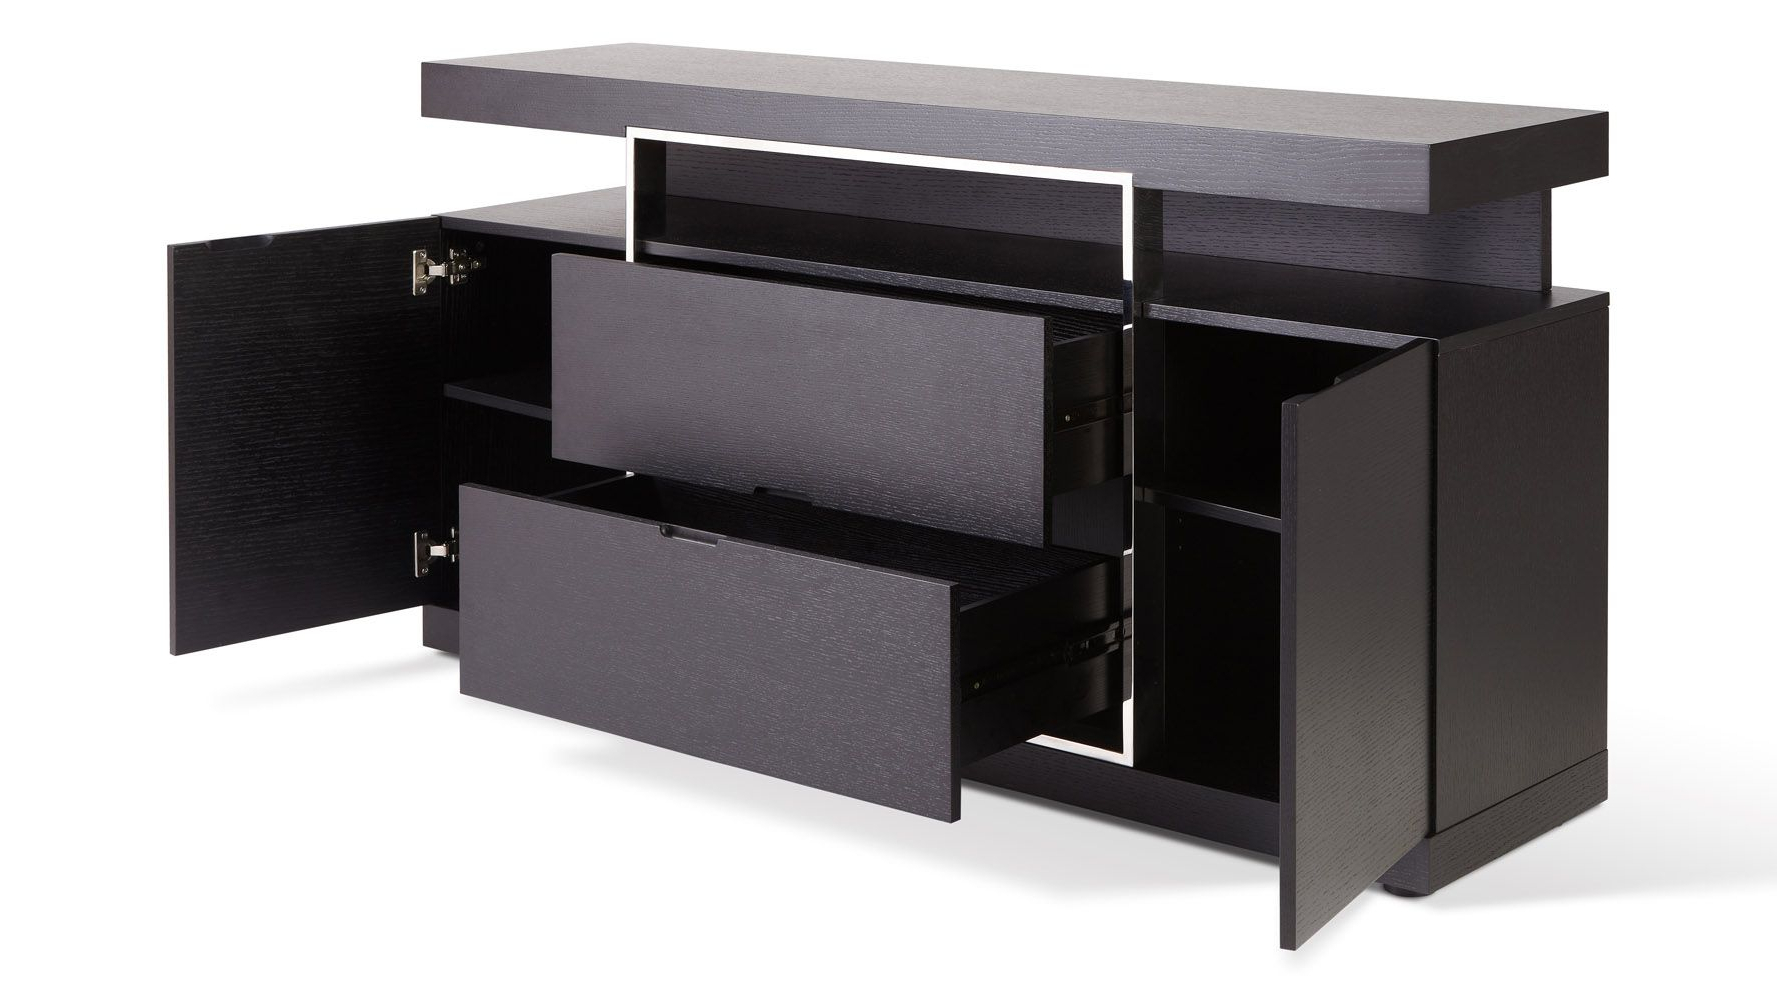 Norah Buffet | Tables | Furniture, Buffet, Office Furniture In Modern Espresso Storage Buffets (View 15 of 20)